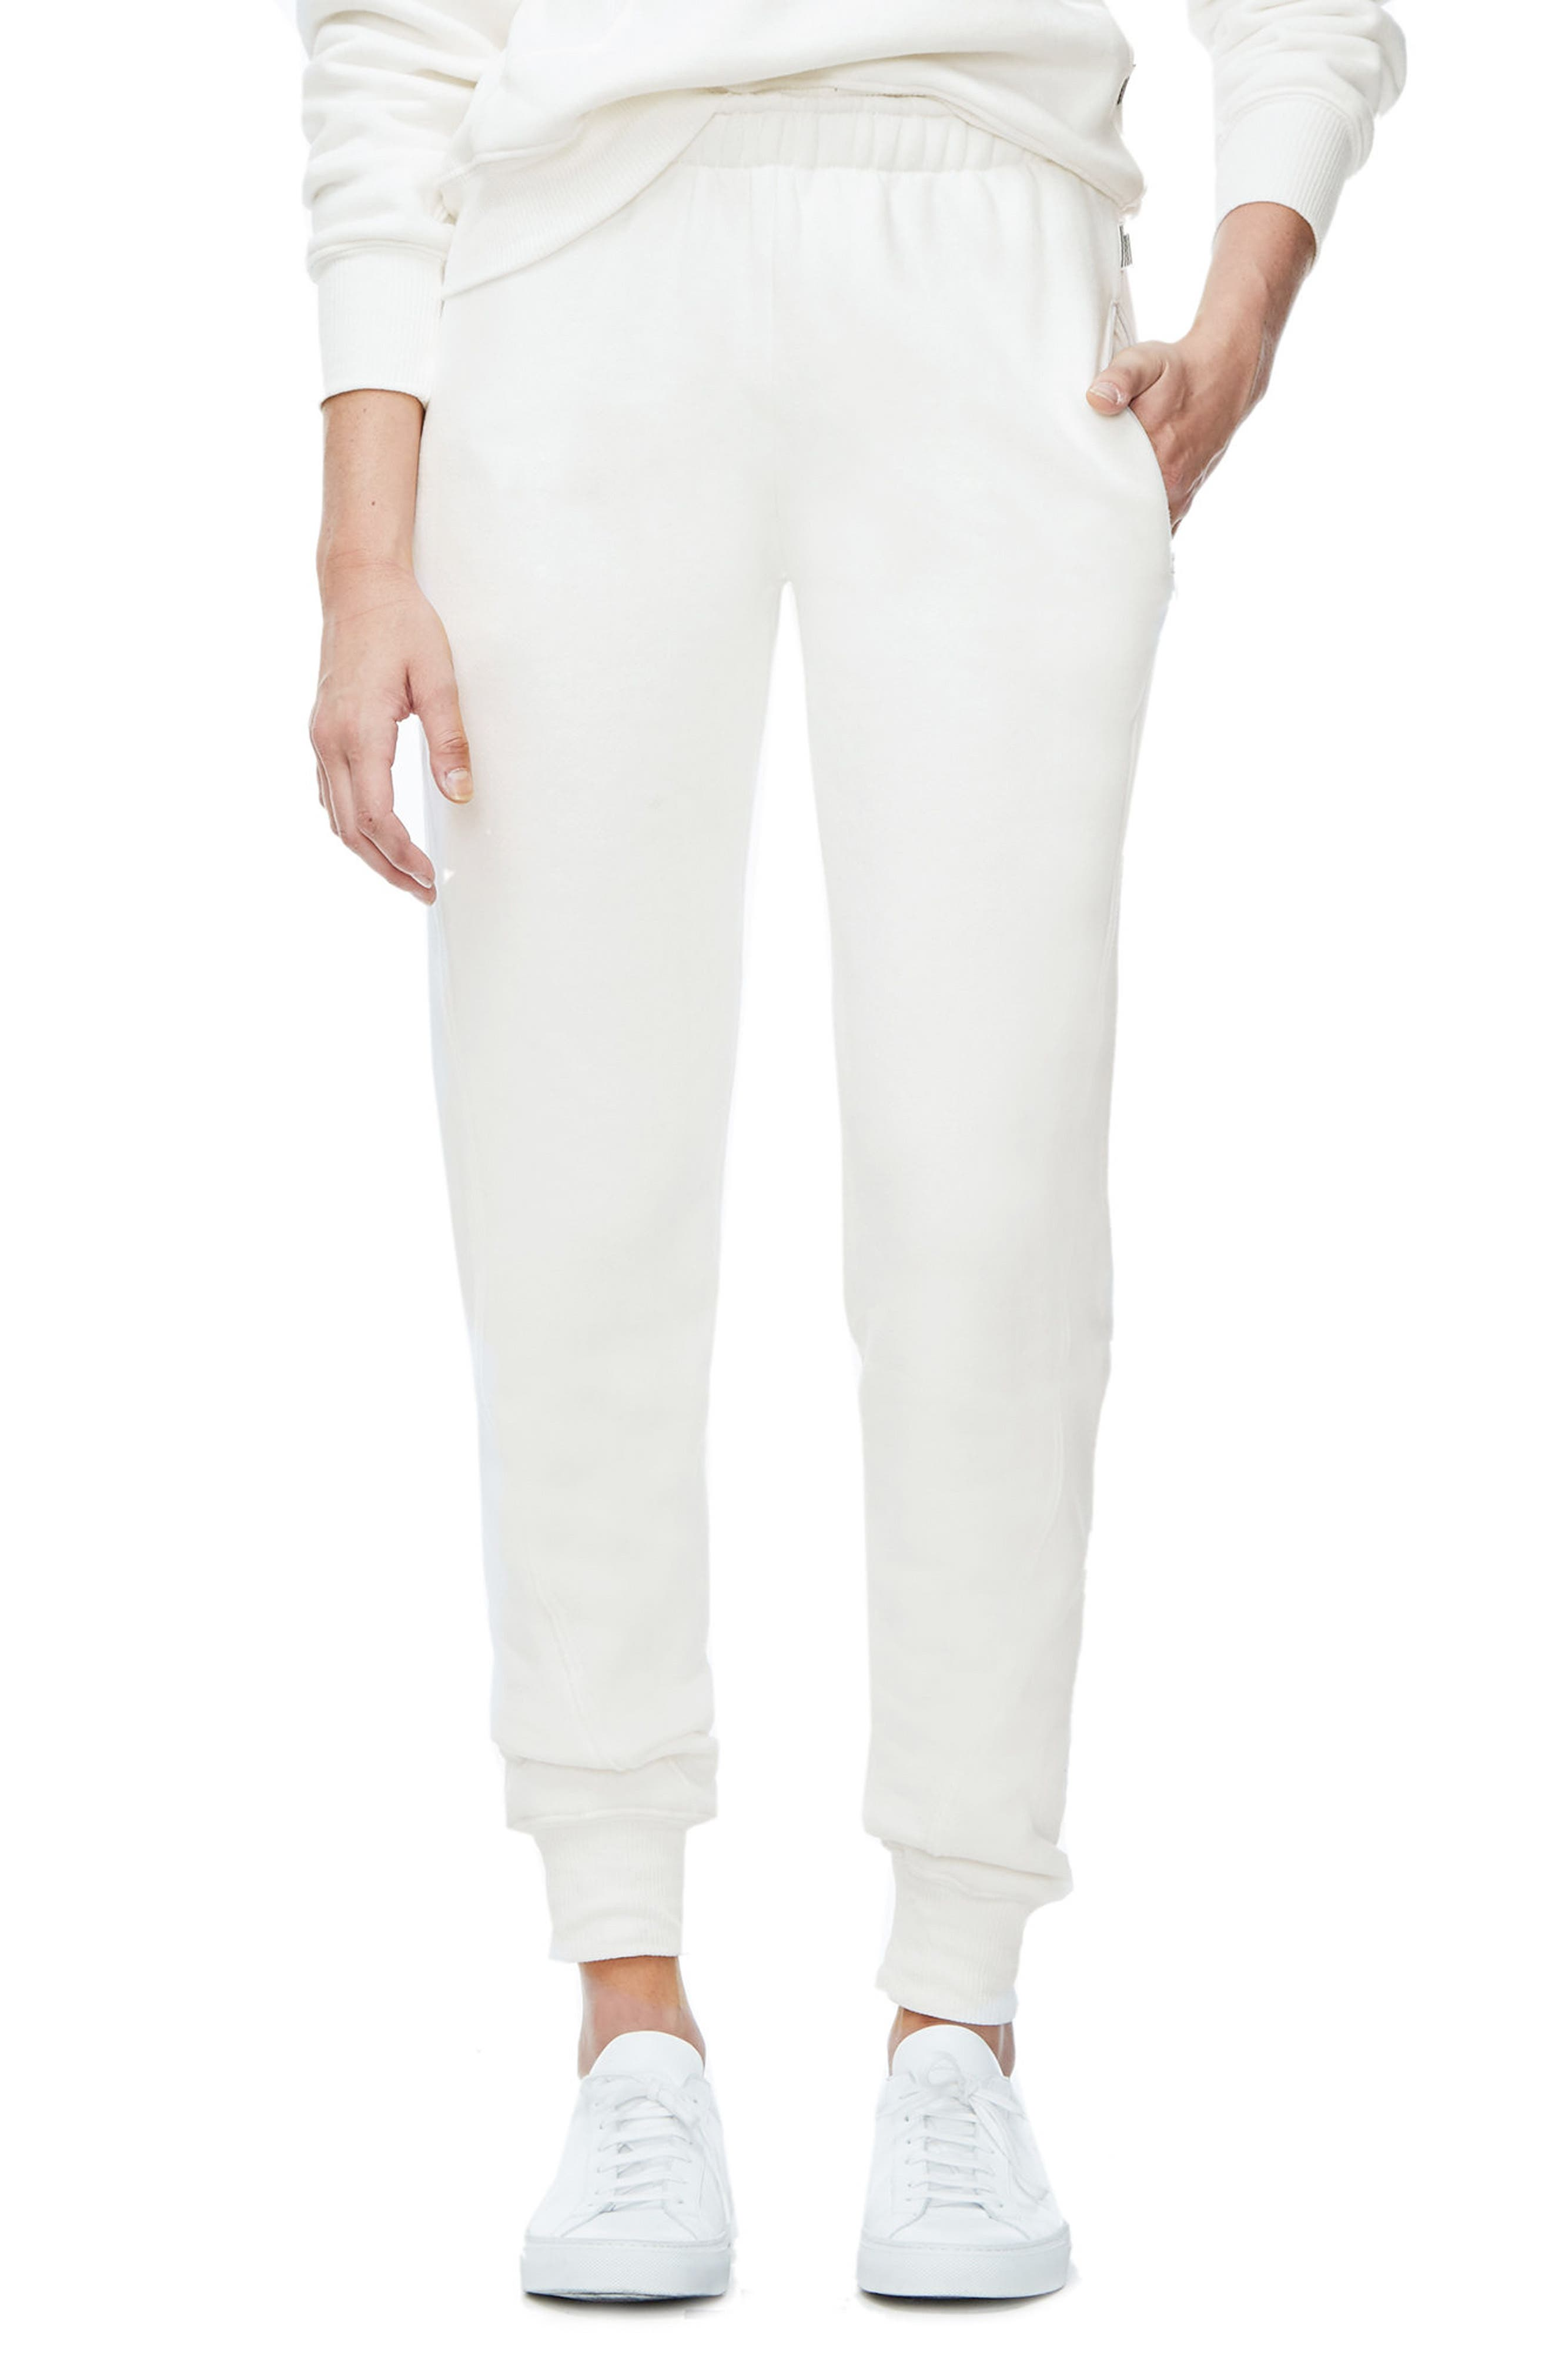 Good Sweats The Twisted Seam Pants,                             Alternate thumbnail 3, color,                             Off White